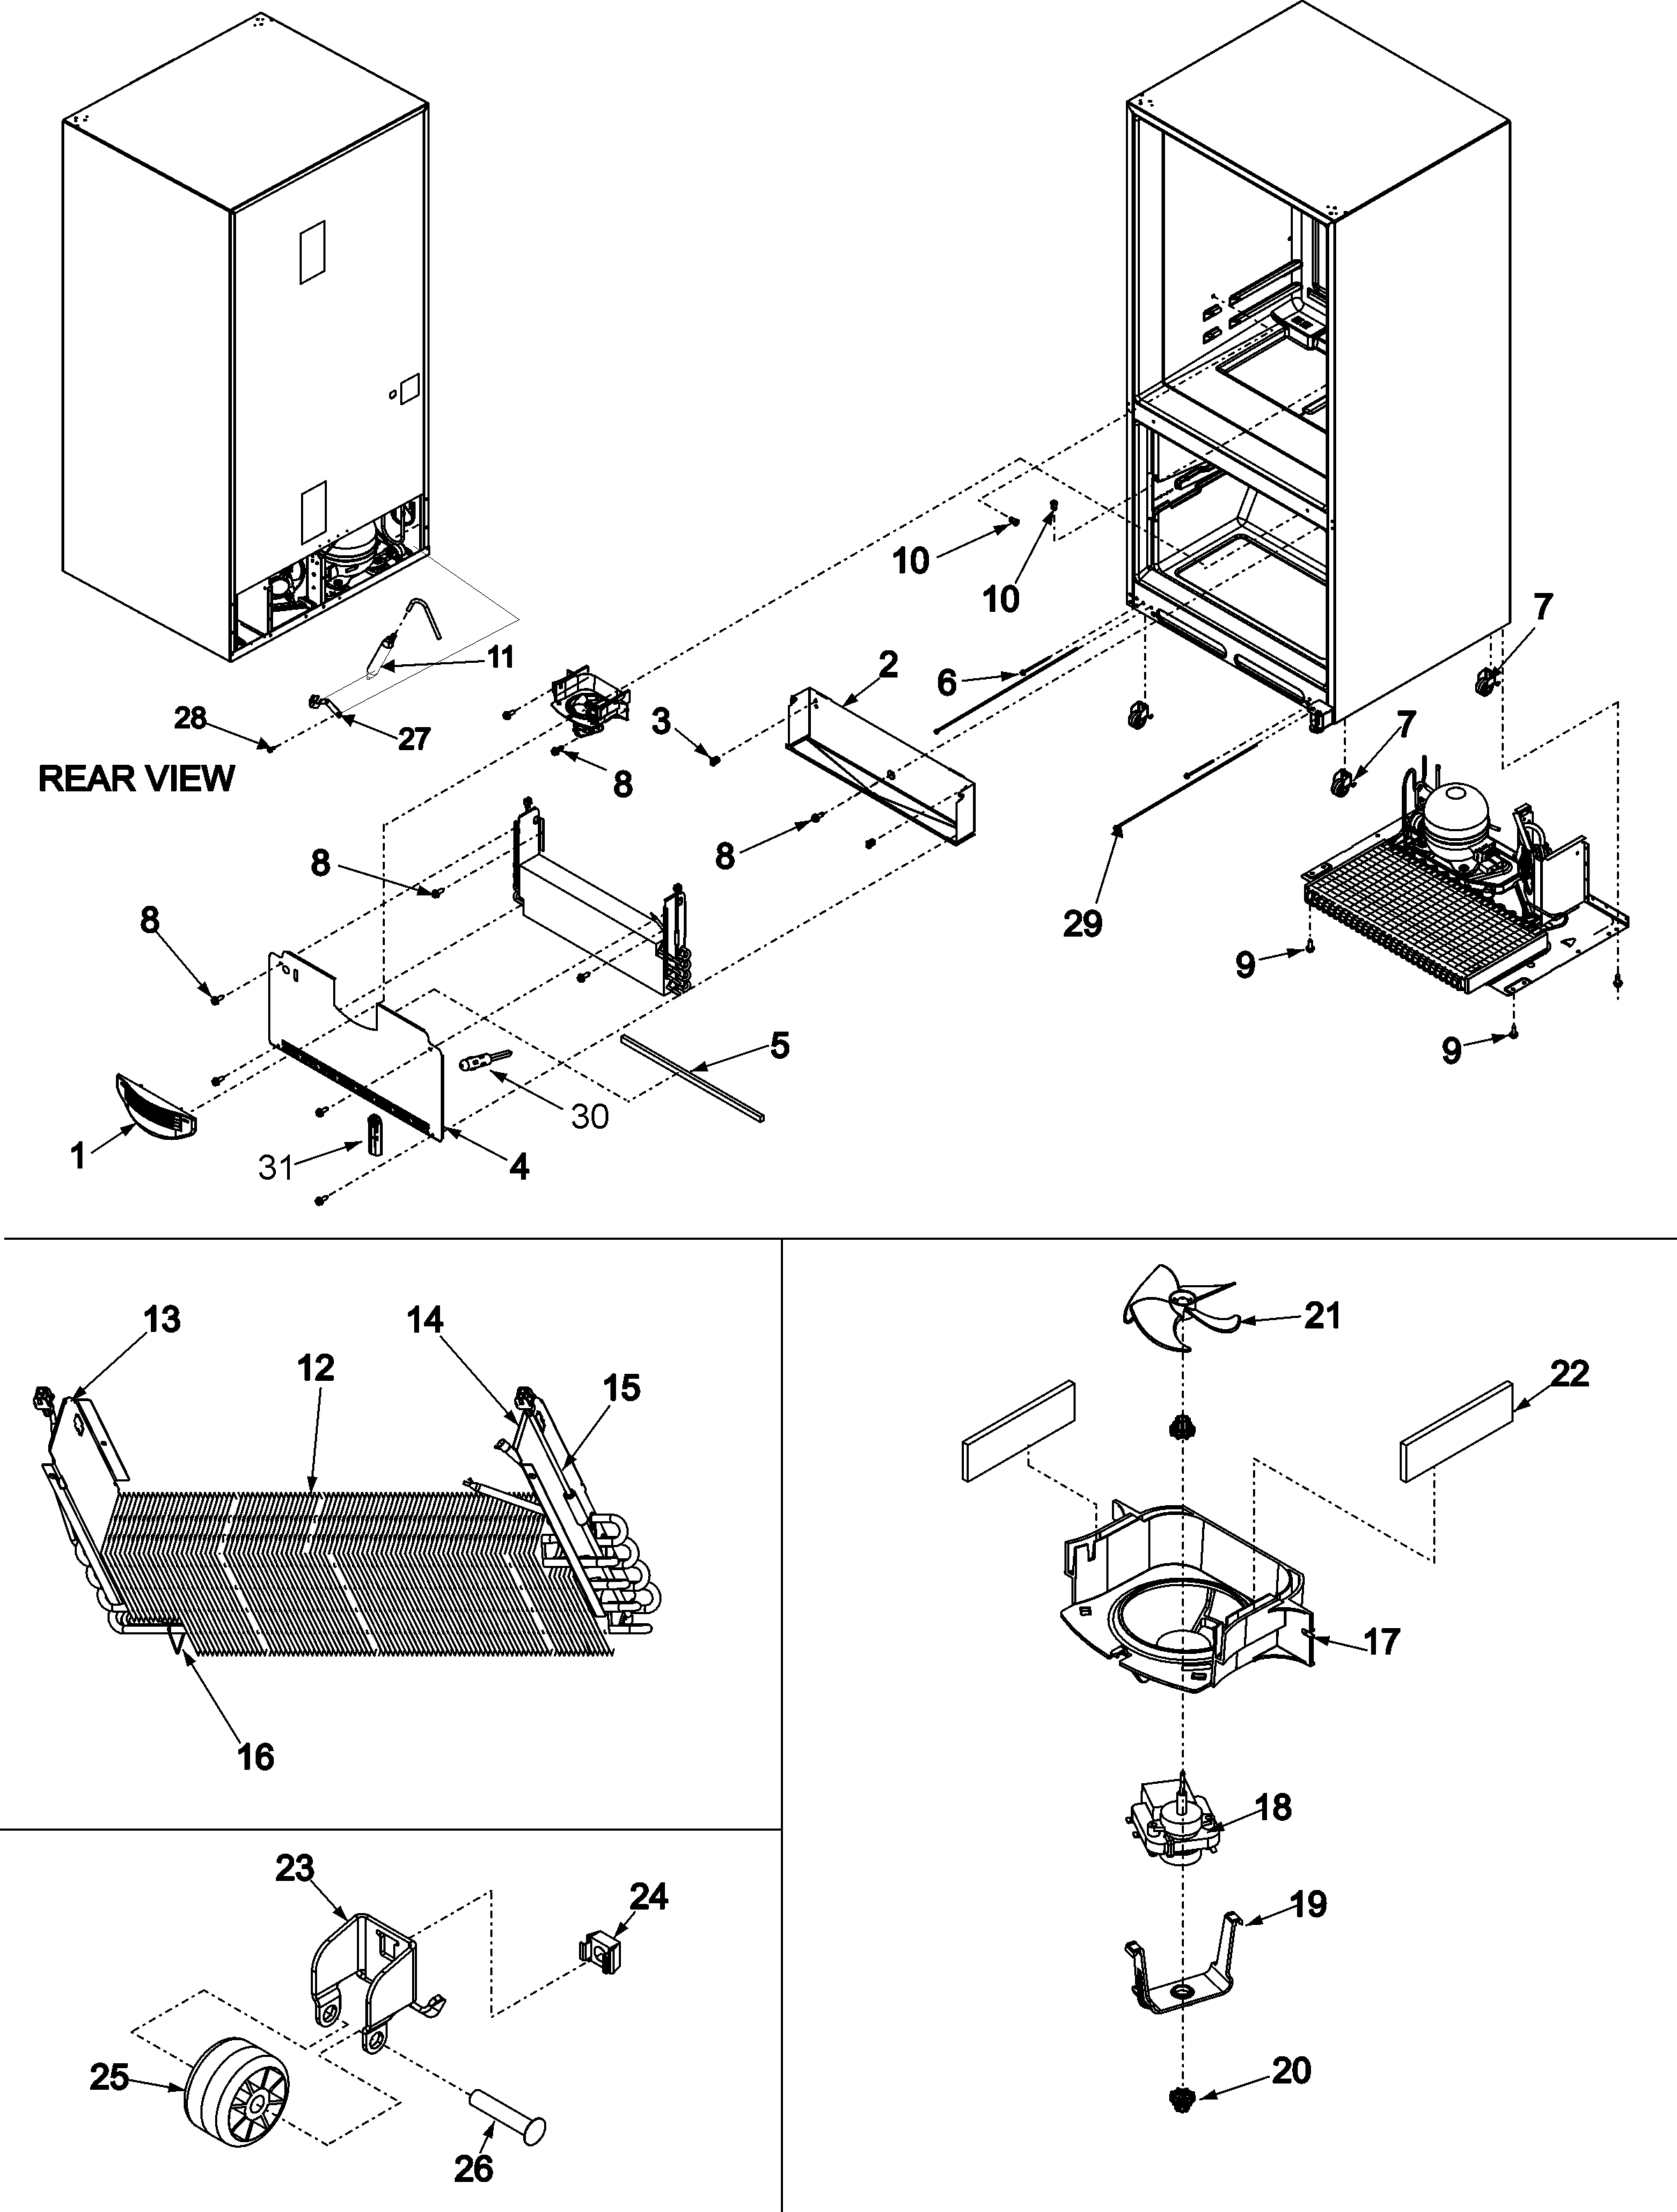 EVAPORATOR AREA & ROLLERS Diagram & Parts List for Model